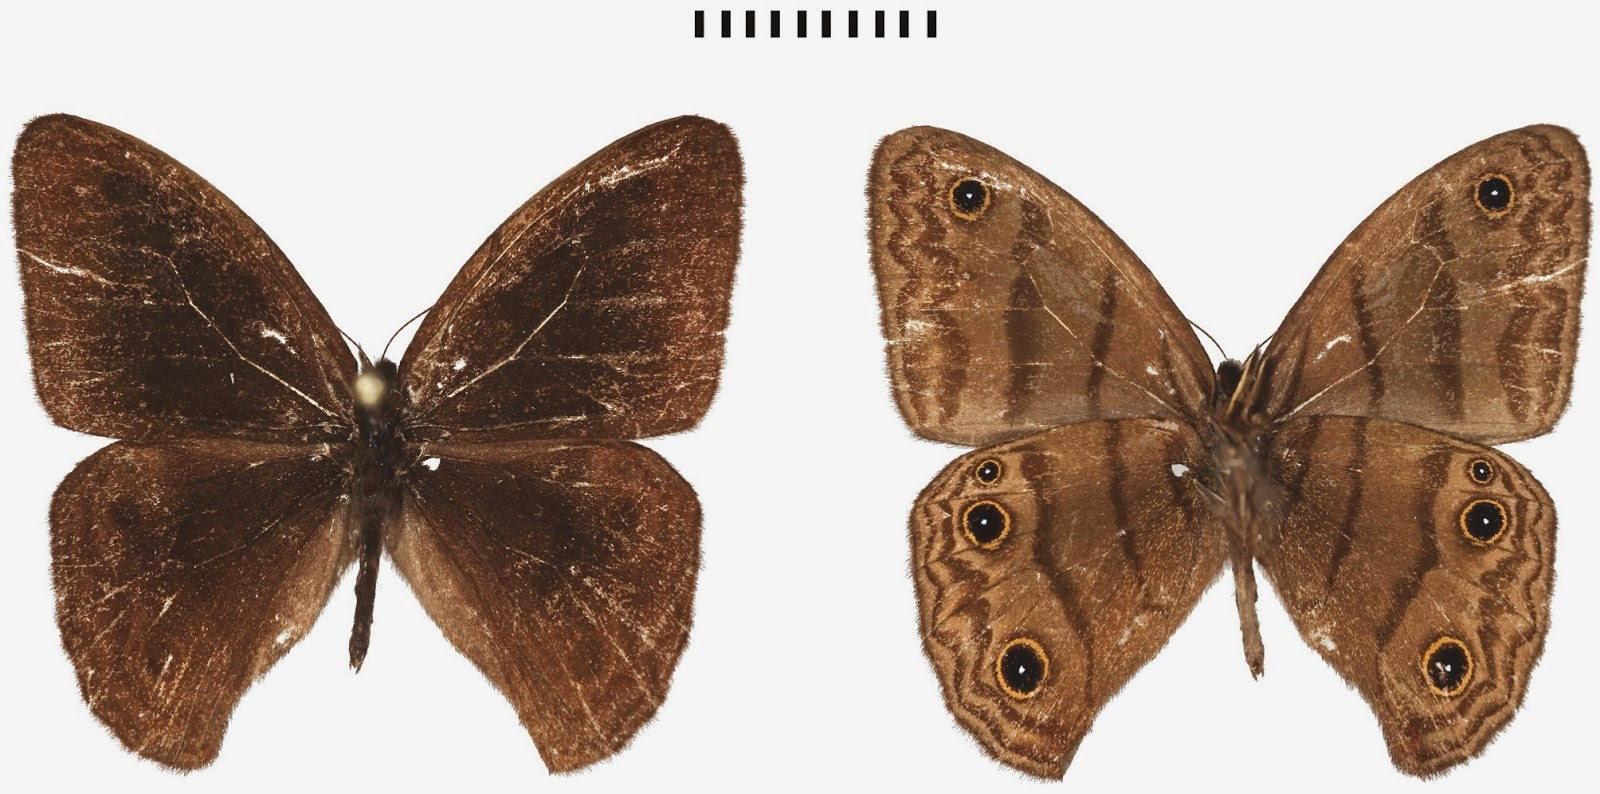 http://sciencythoughts.blogspot.co.uk/2014/11/a-new-species-of-satyrine-butterfly.html